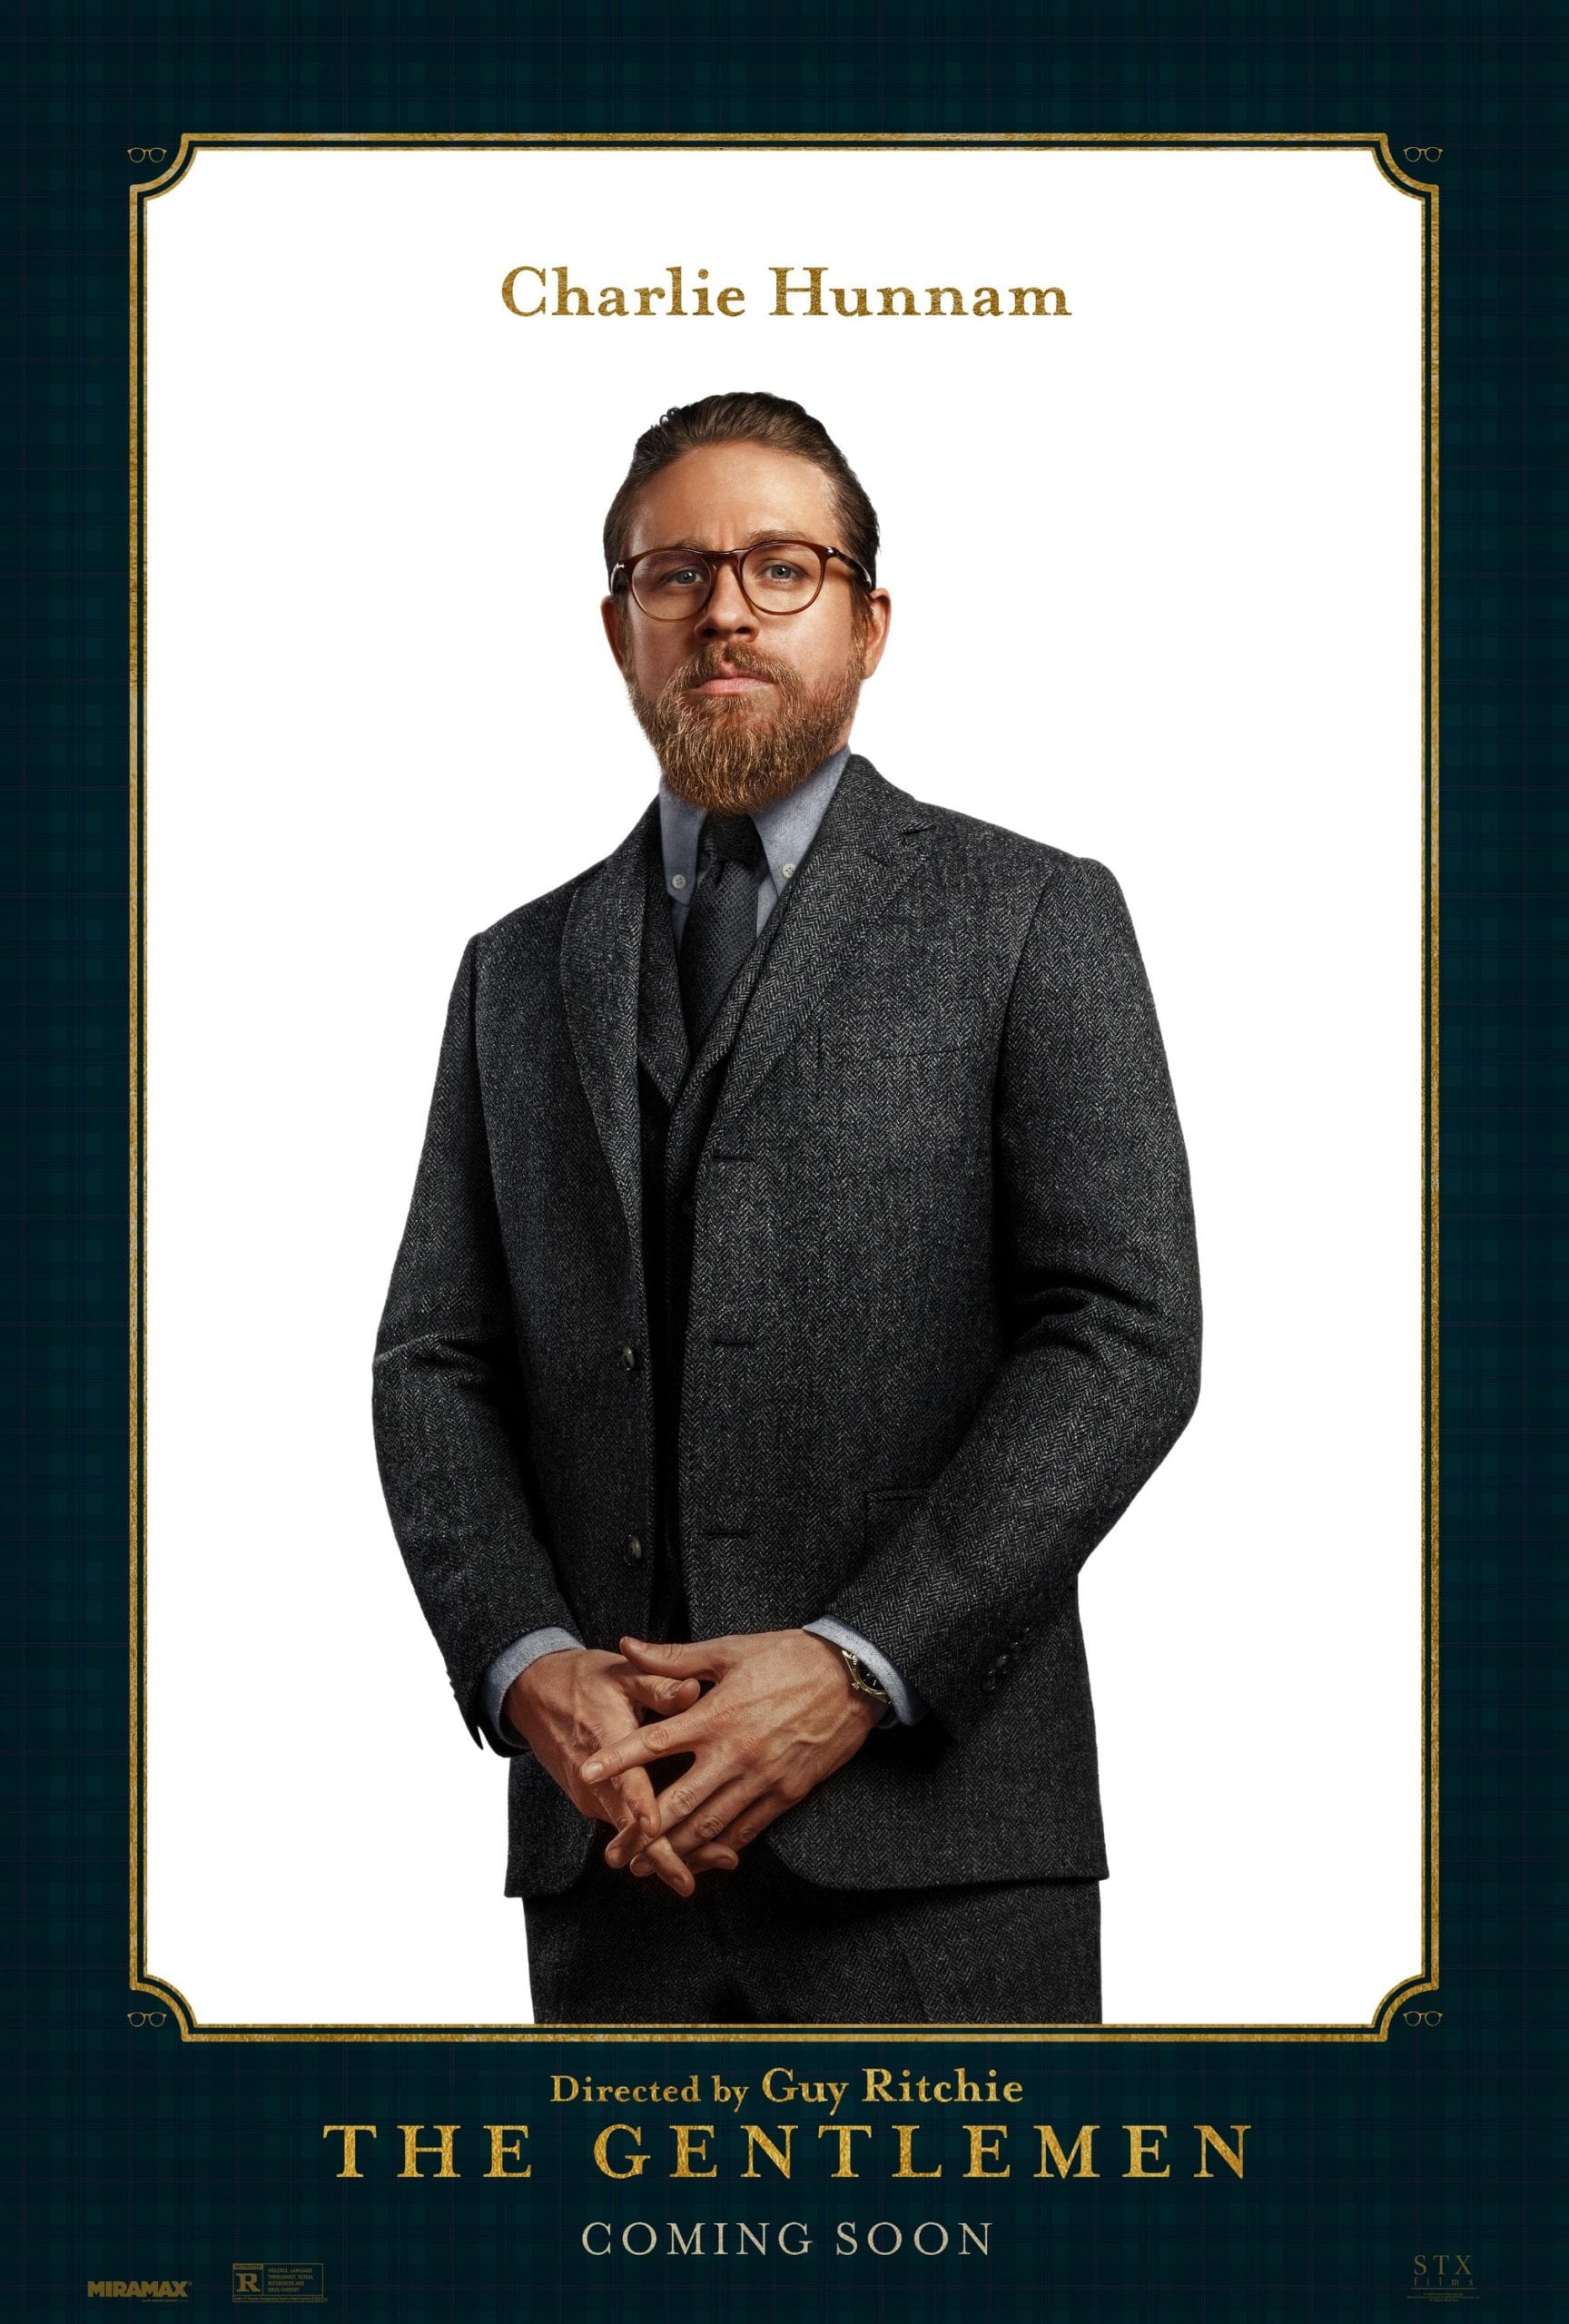 Charlie Hunnam as Raymond Smith The Gentlemen Character Posters